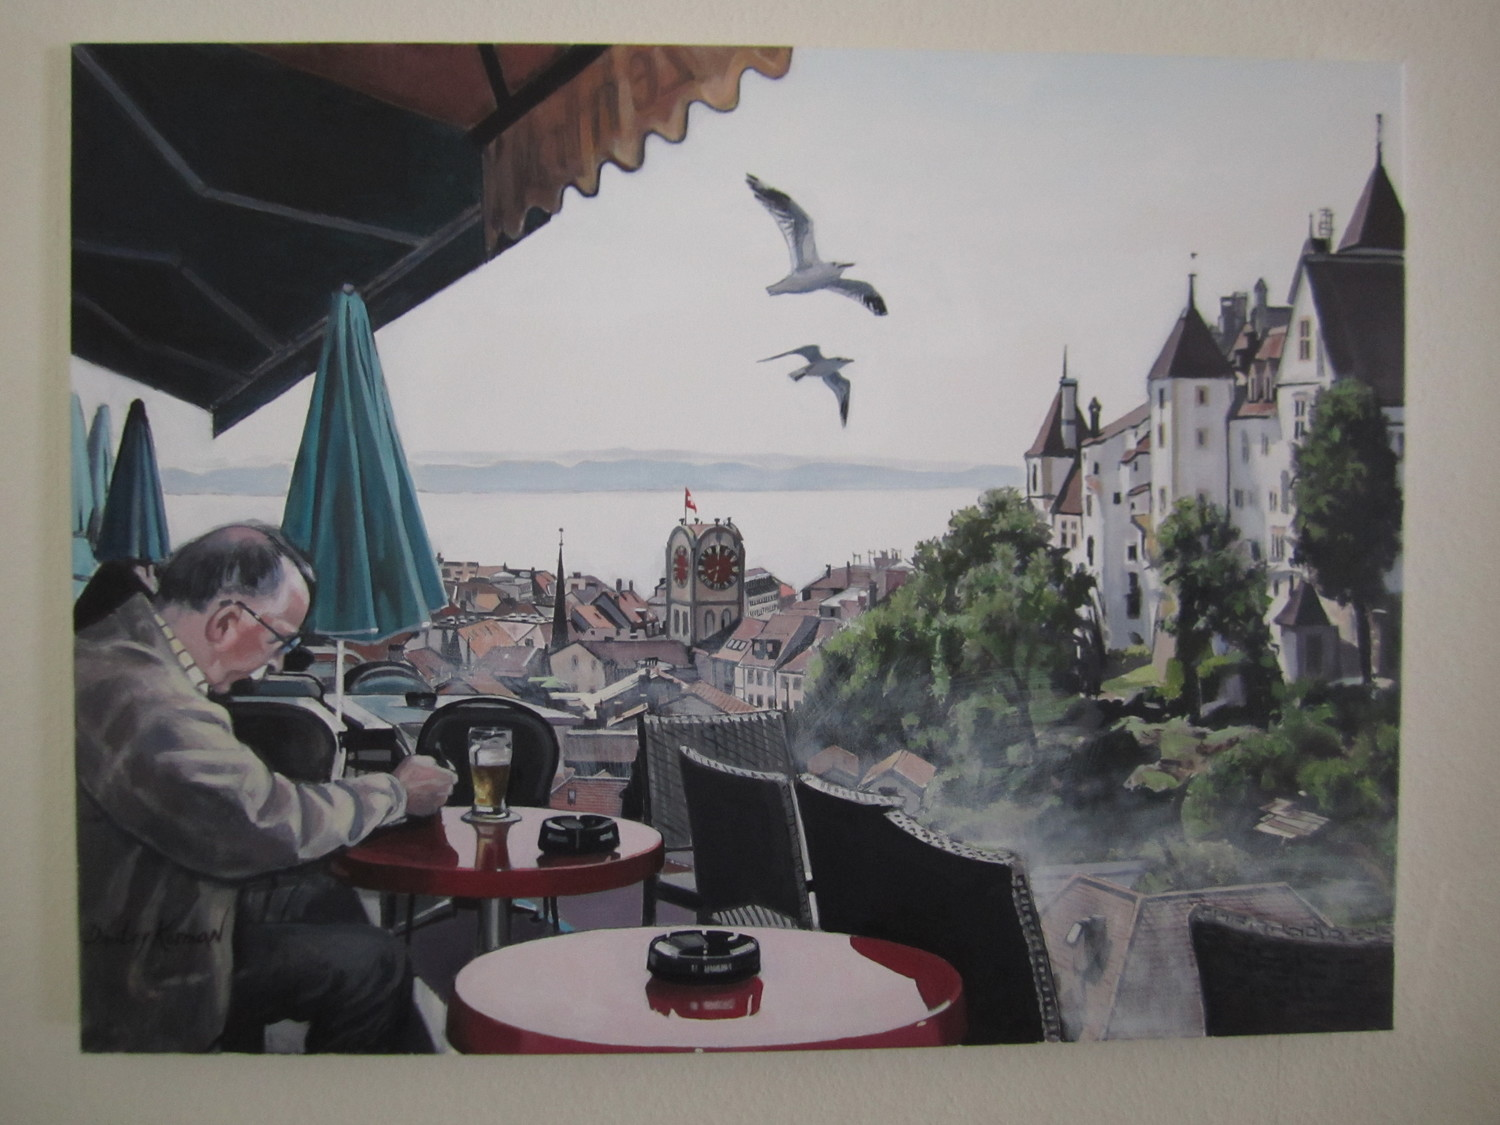 Neuchâtel, Switzerland, acrylic on canvas